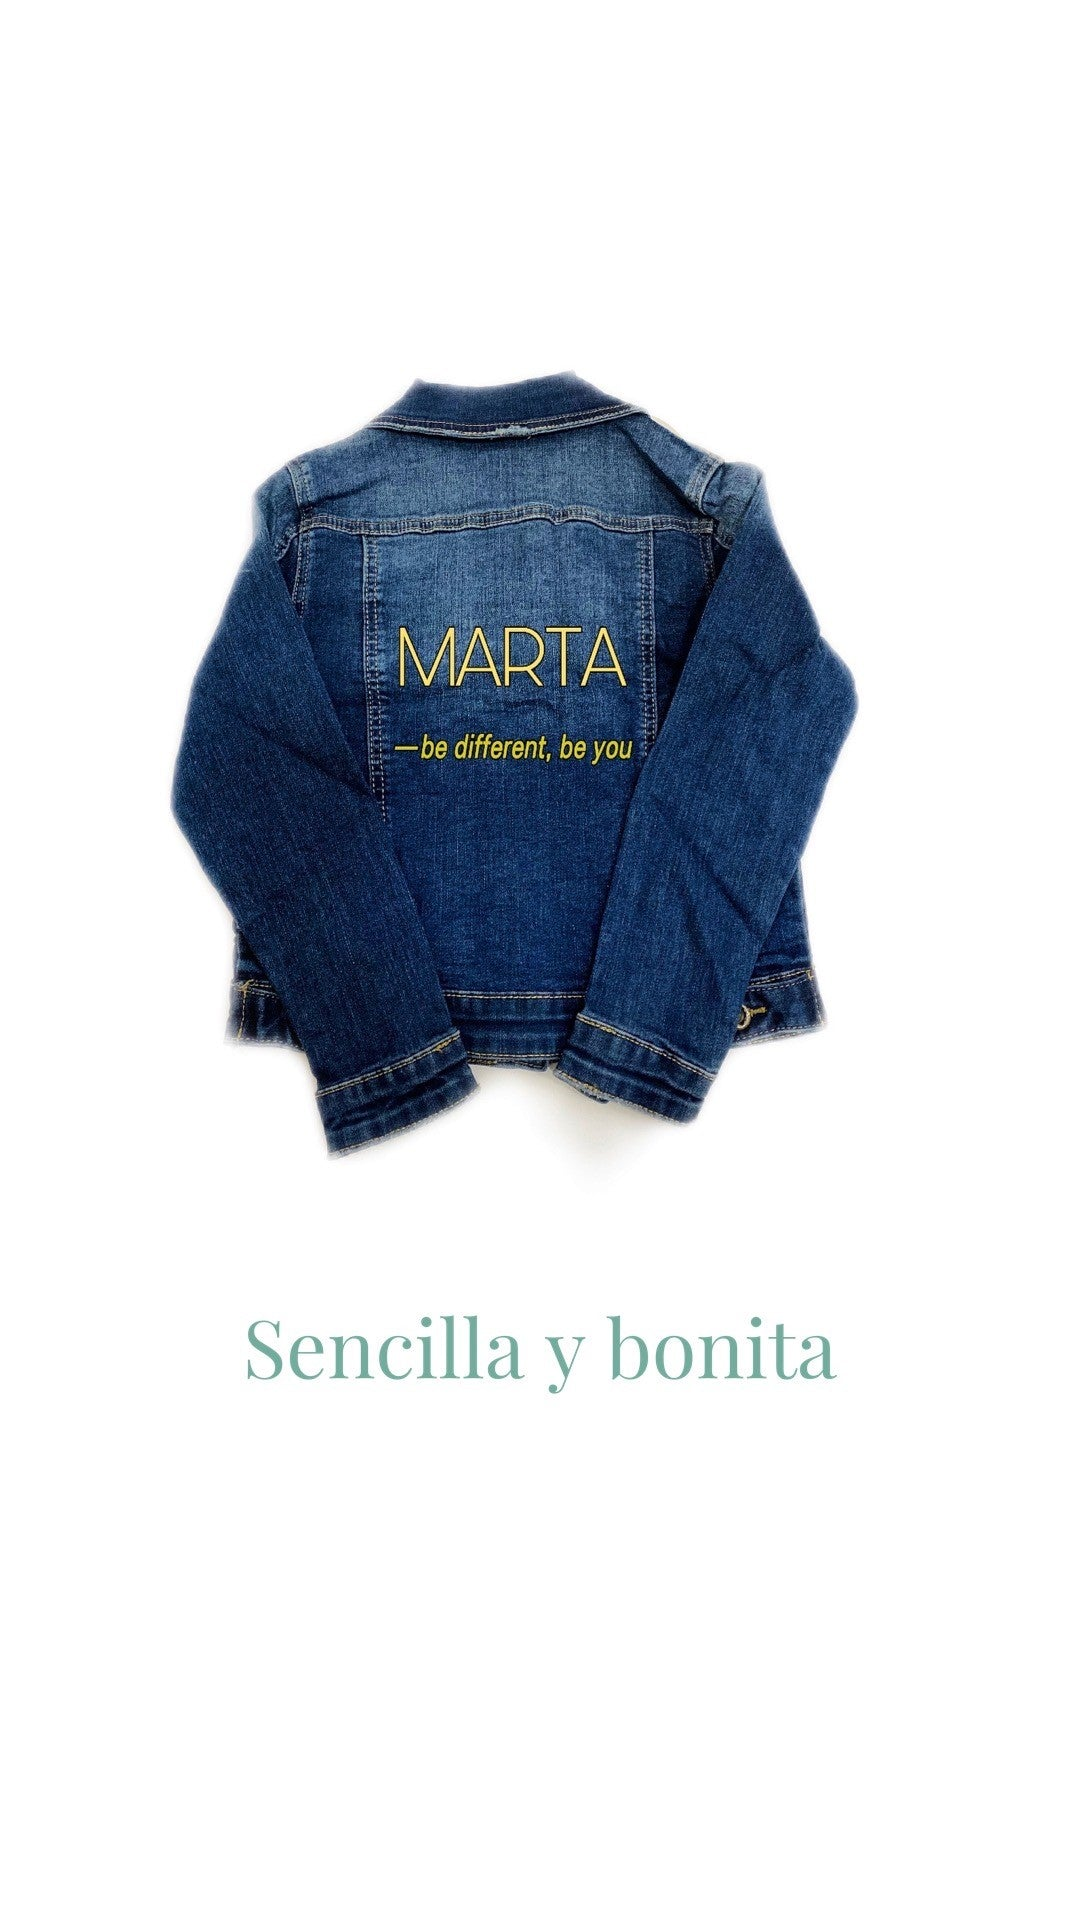 Chaqueta Denim customizable con nombre